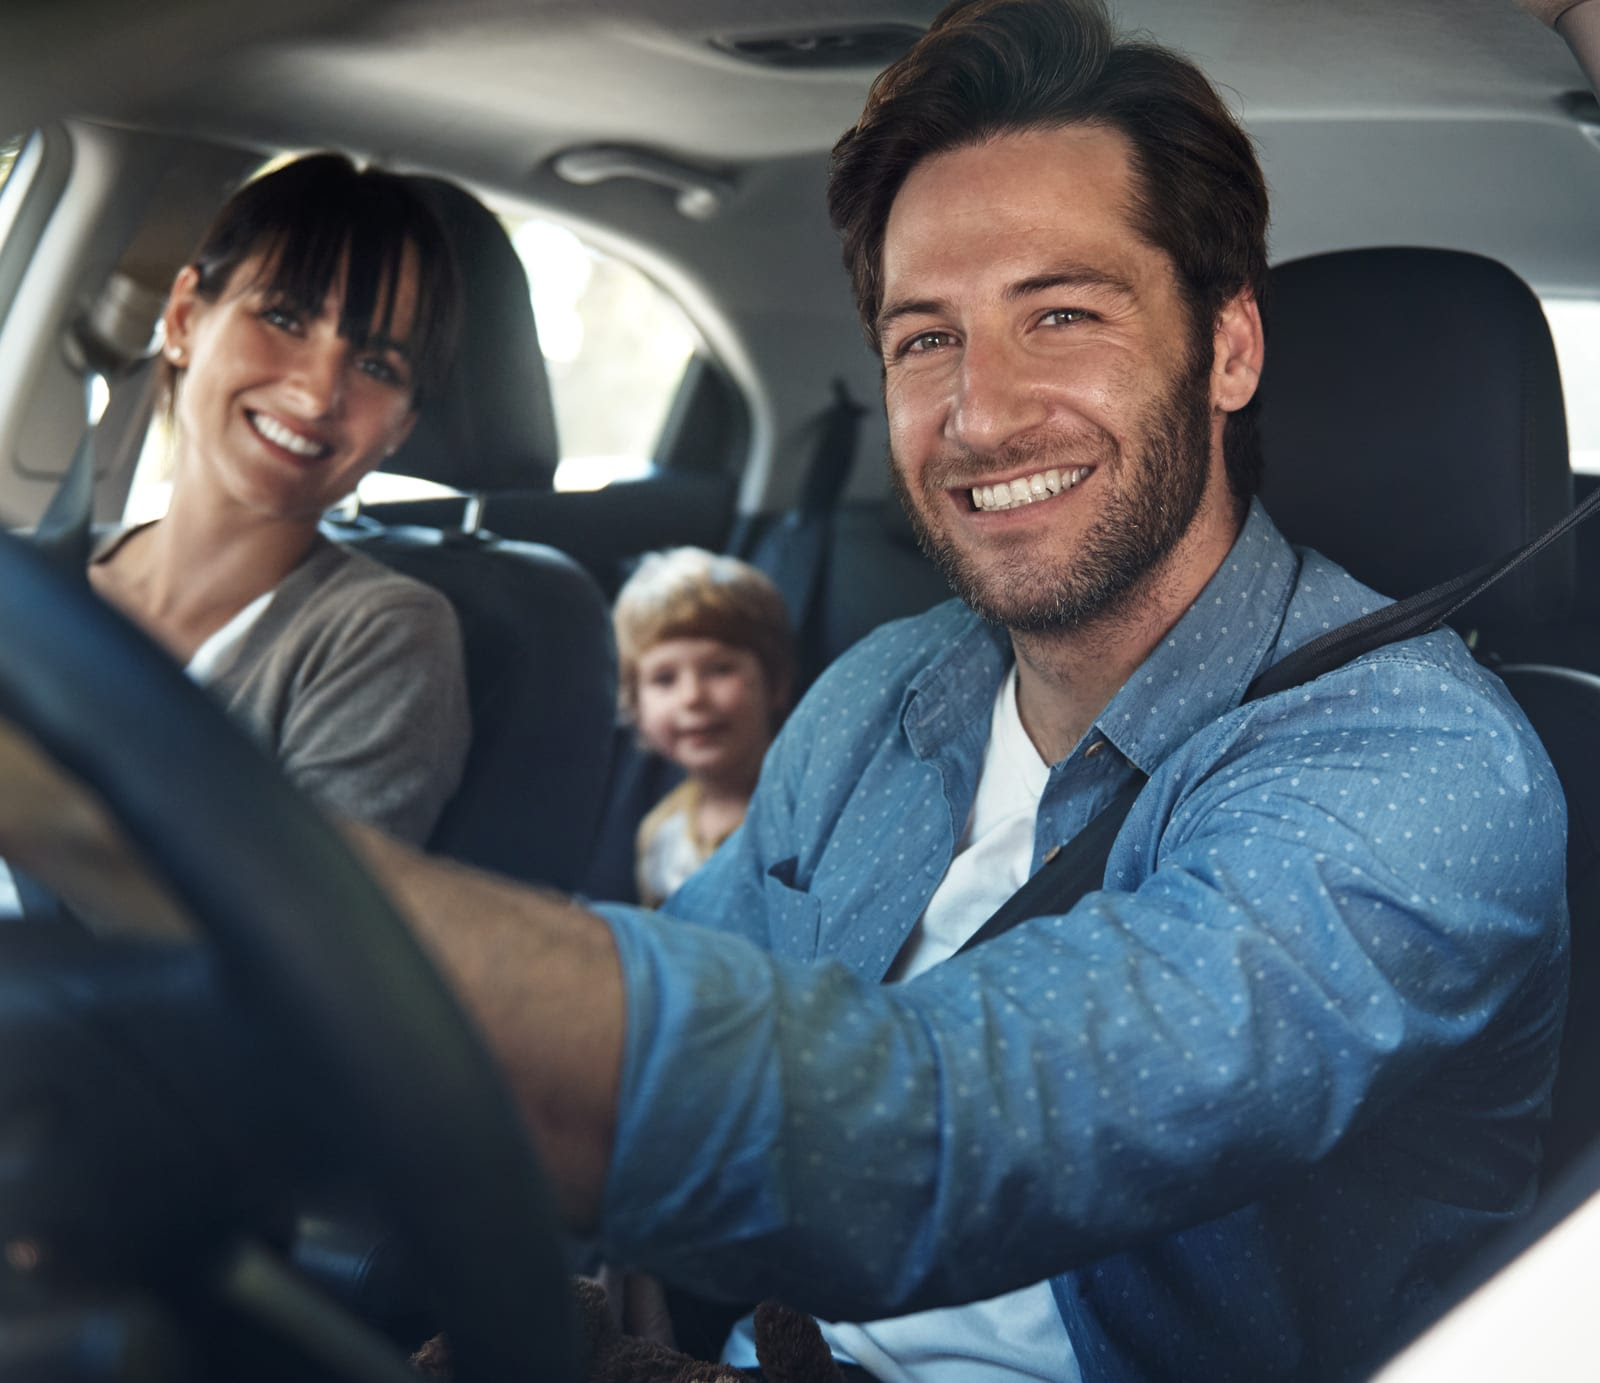 Best Car Insurance Companies For Veterans And Military Families Valuepenguin